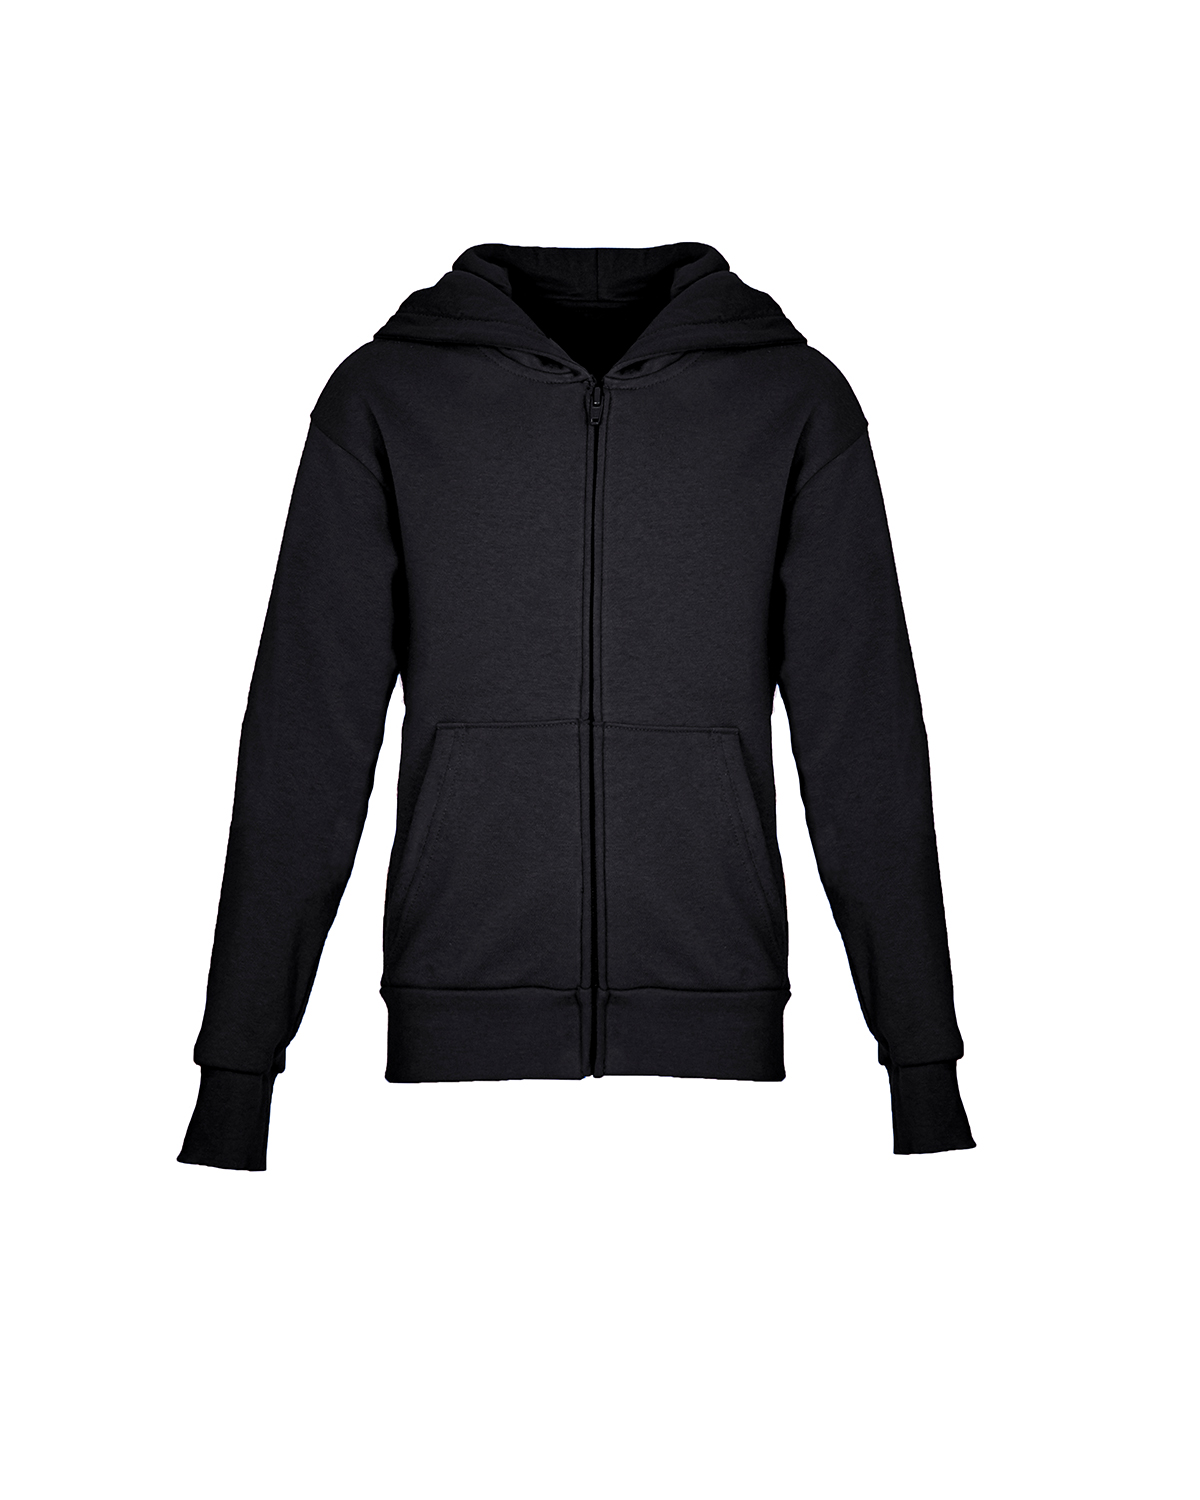 Next Level 9103 - Youth Zip Hoody